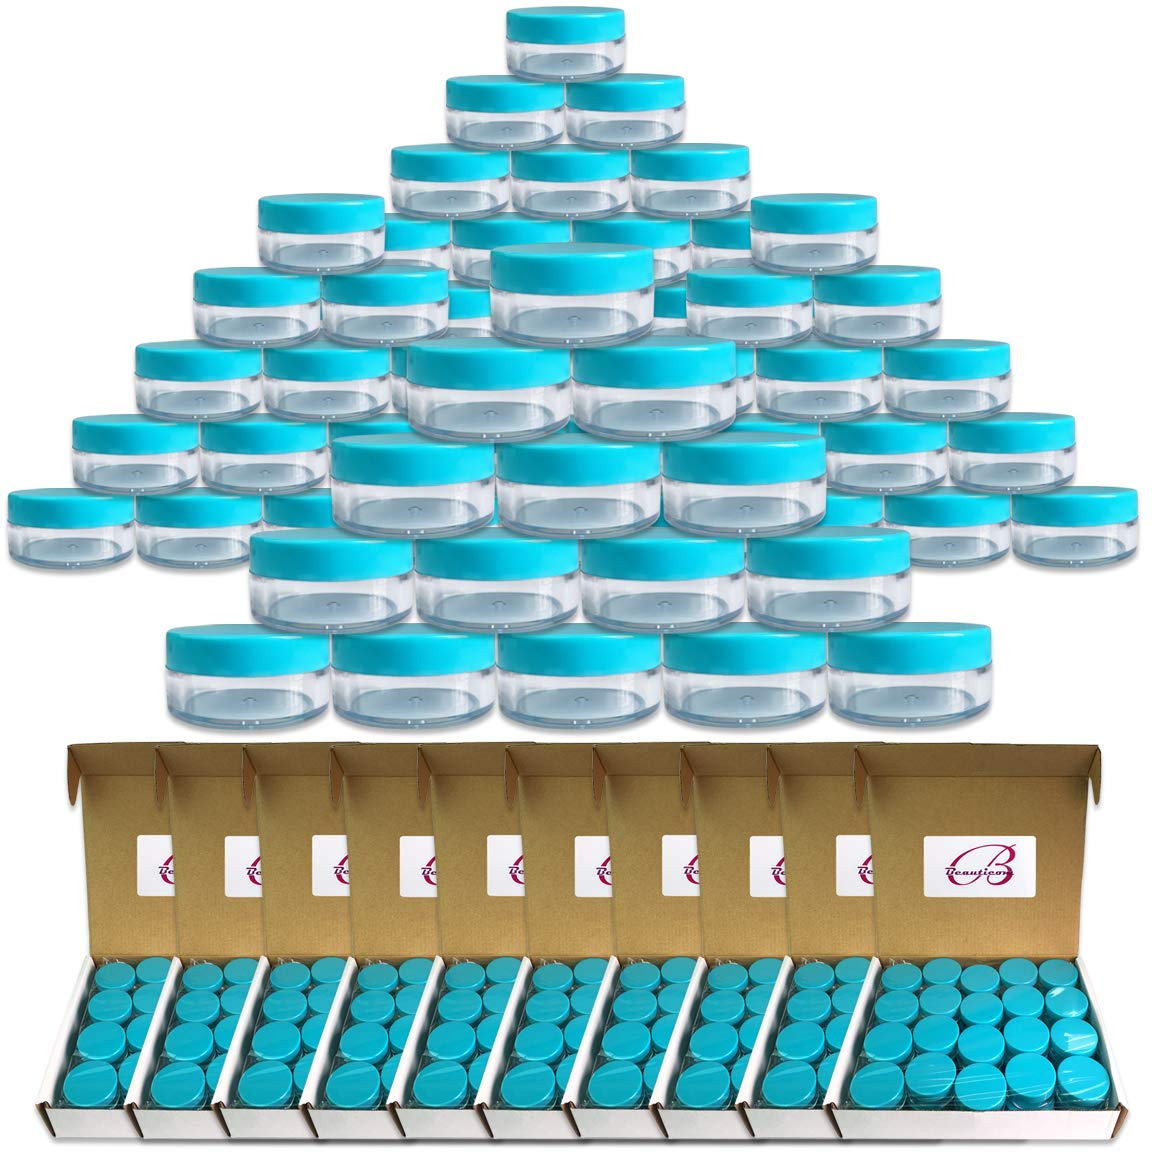 (Quantity: 600 Pieces) Beauticom 10G/10ML Round Clear Jars with TEAL Sky Blue Lids for Lotion, Creams, Toners, Lip Balm, Makeup Samples - BPA Free